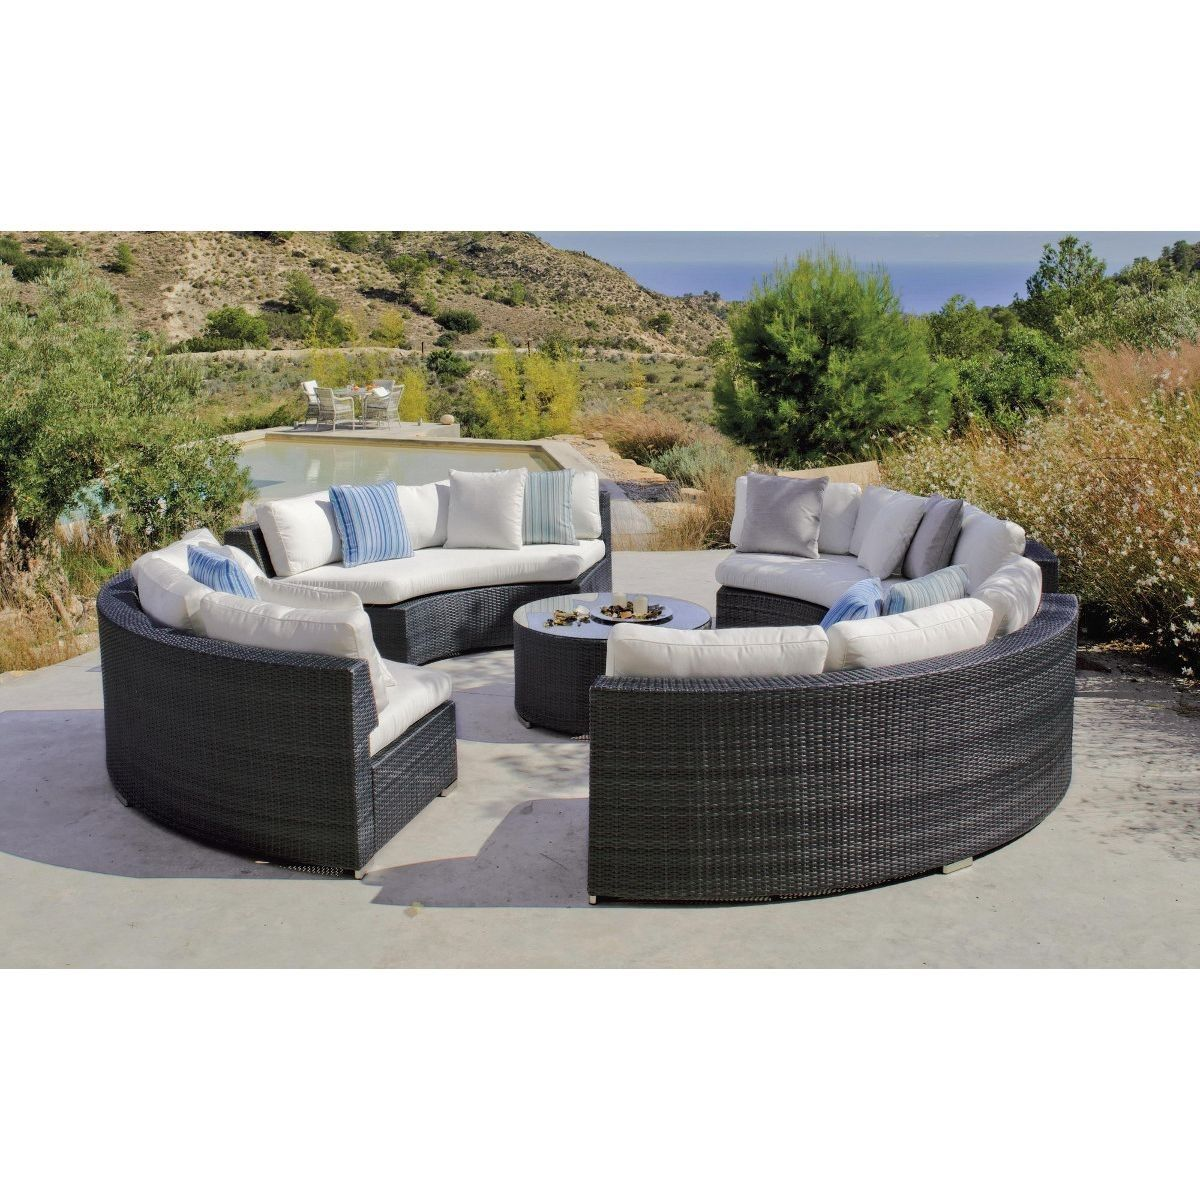 Canape Jardin Cercle Et Table Basse Salermo Taille 8 Pers